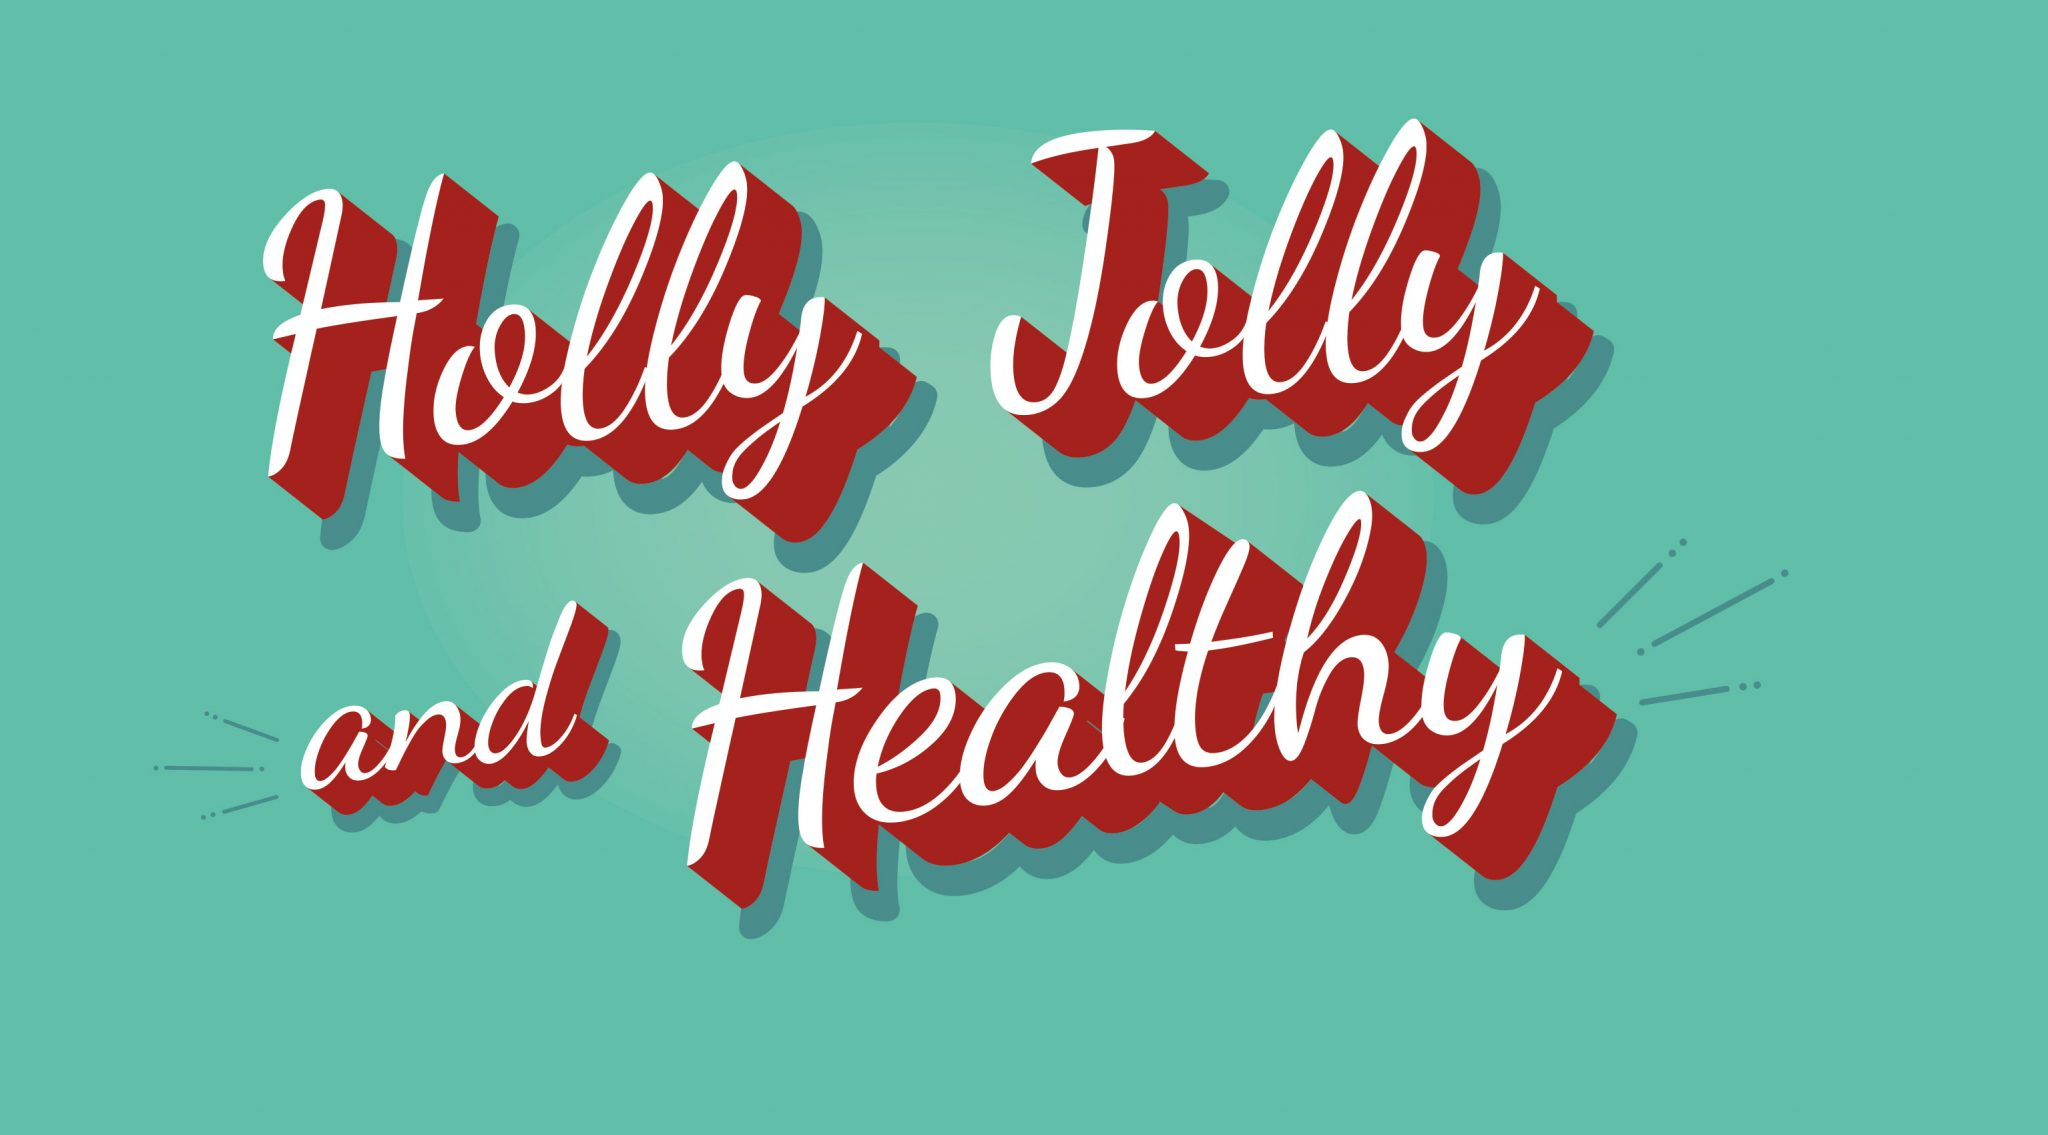 Holly Jolly and Healthy